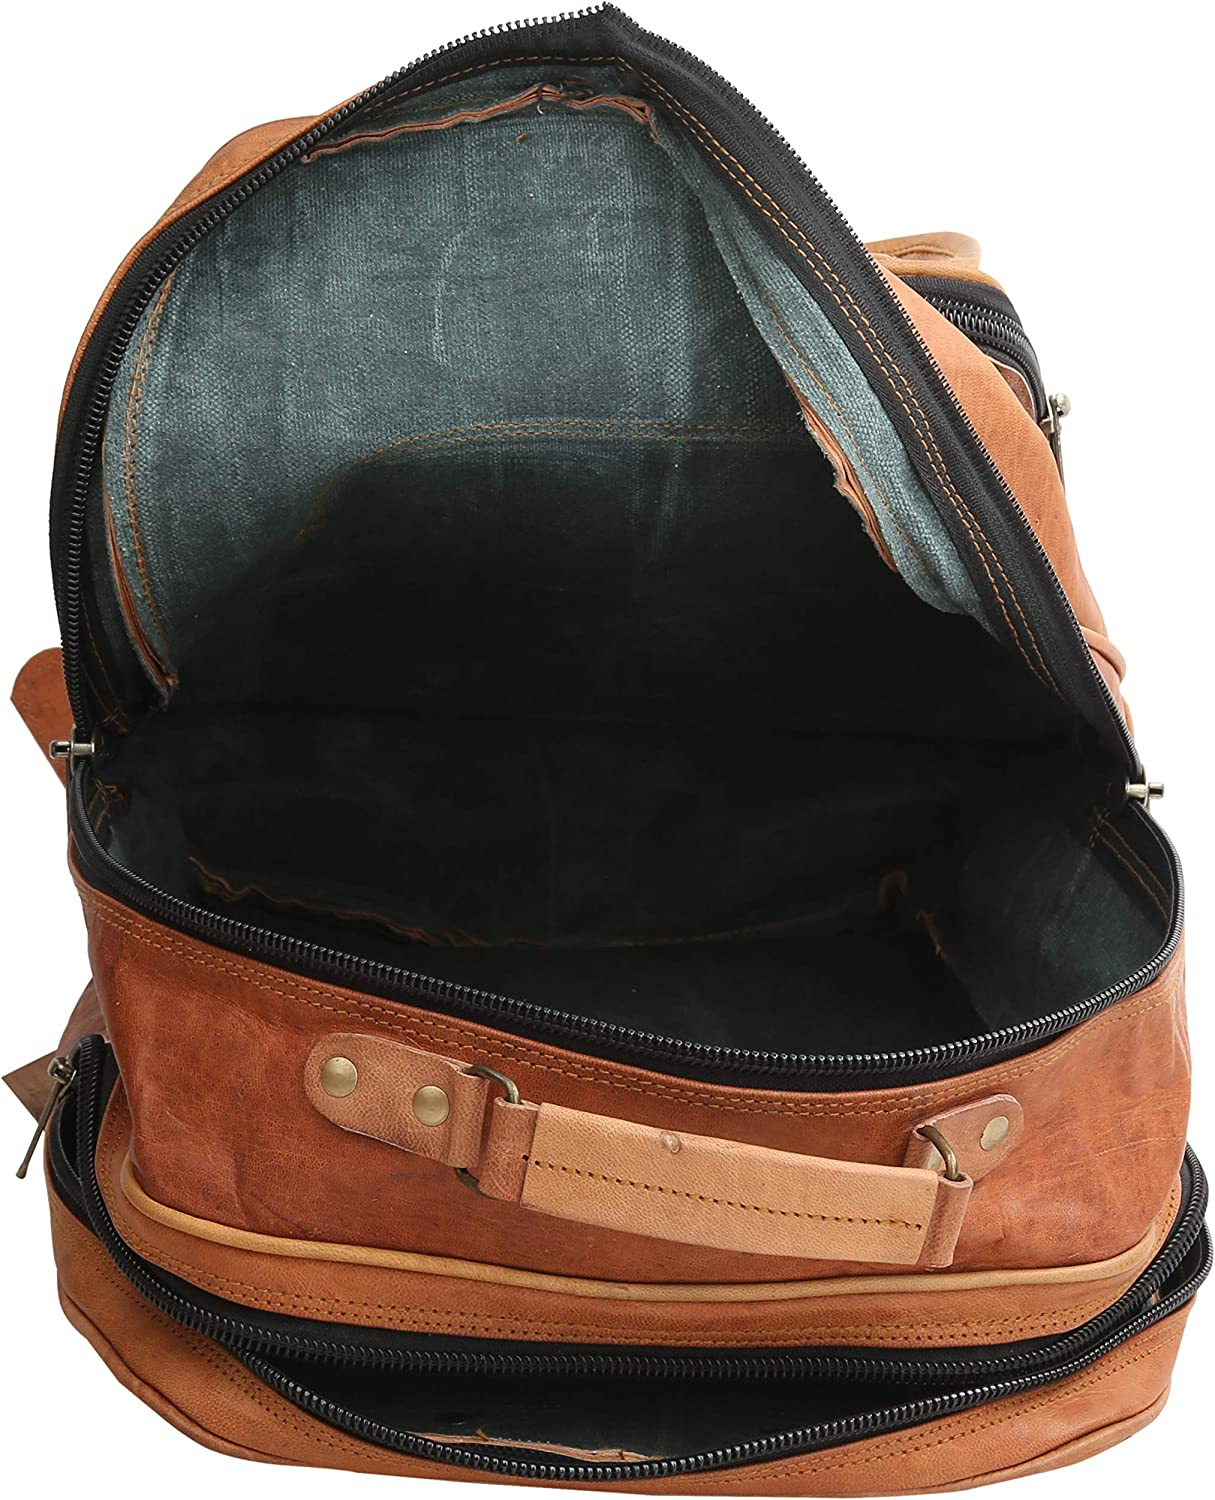 Goat Leather Backpack Handmade College Student Large Size Backpack Unisex